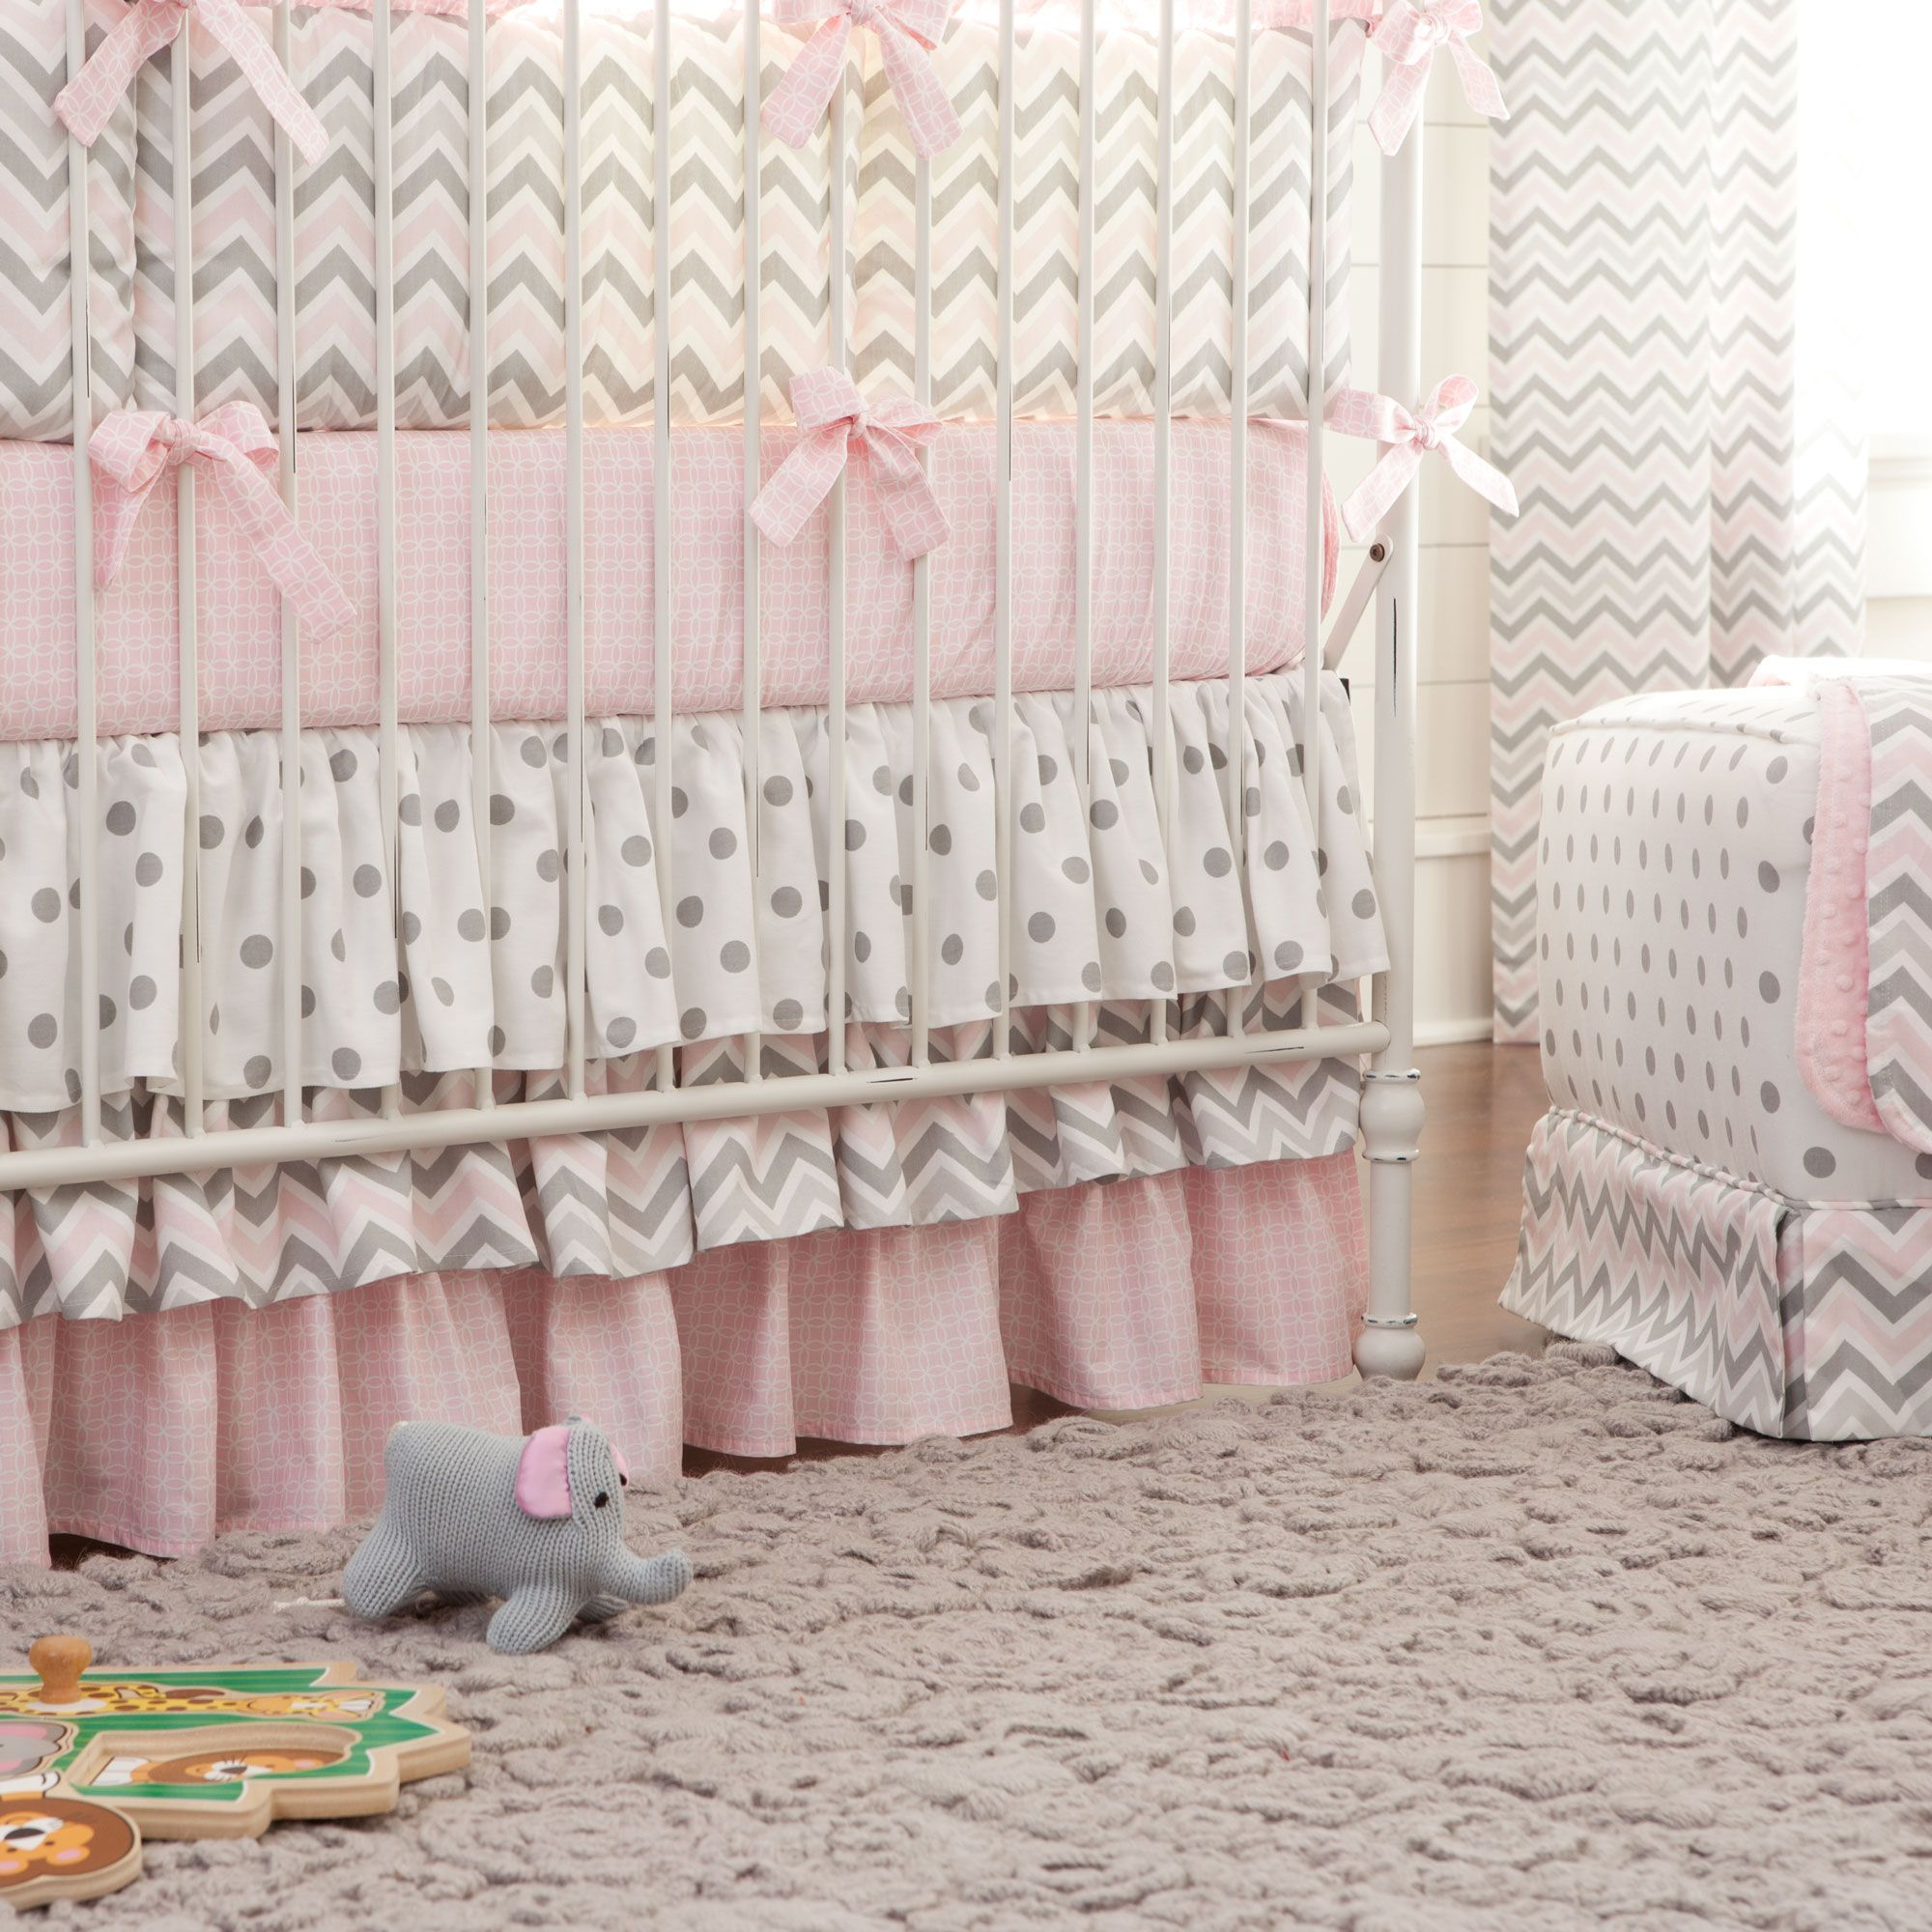 pink and gray chevron crib bedding by carousel designs ultra  - pink and gray chevron baby crib bedding